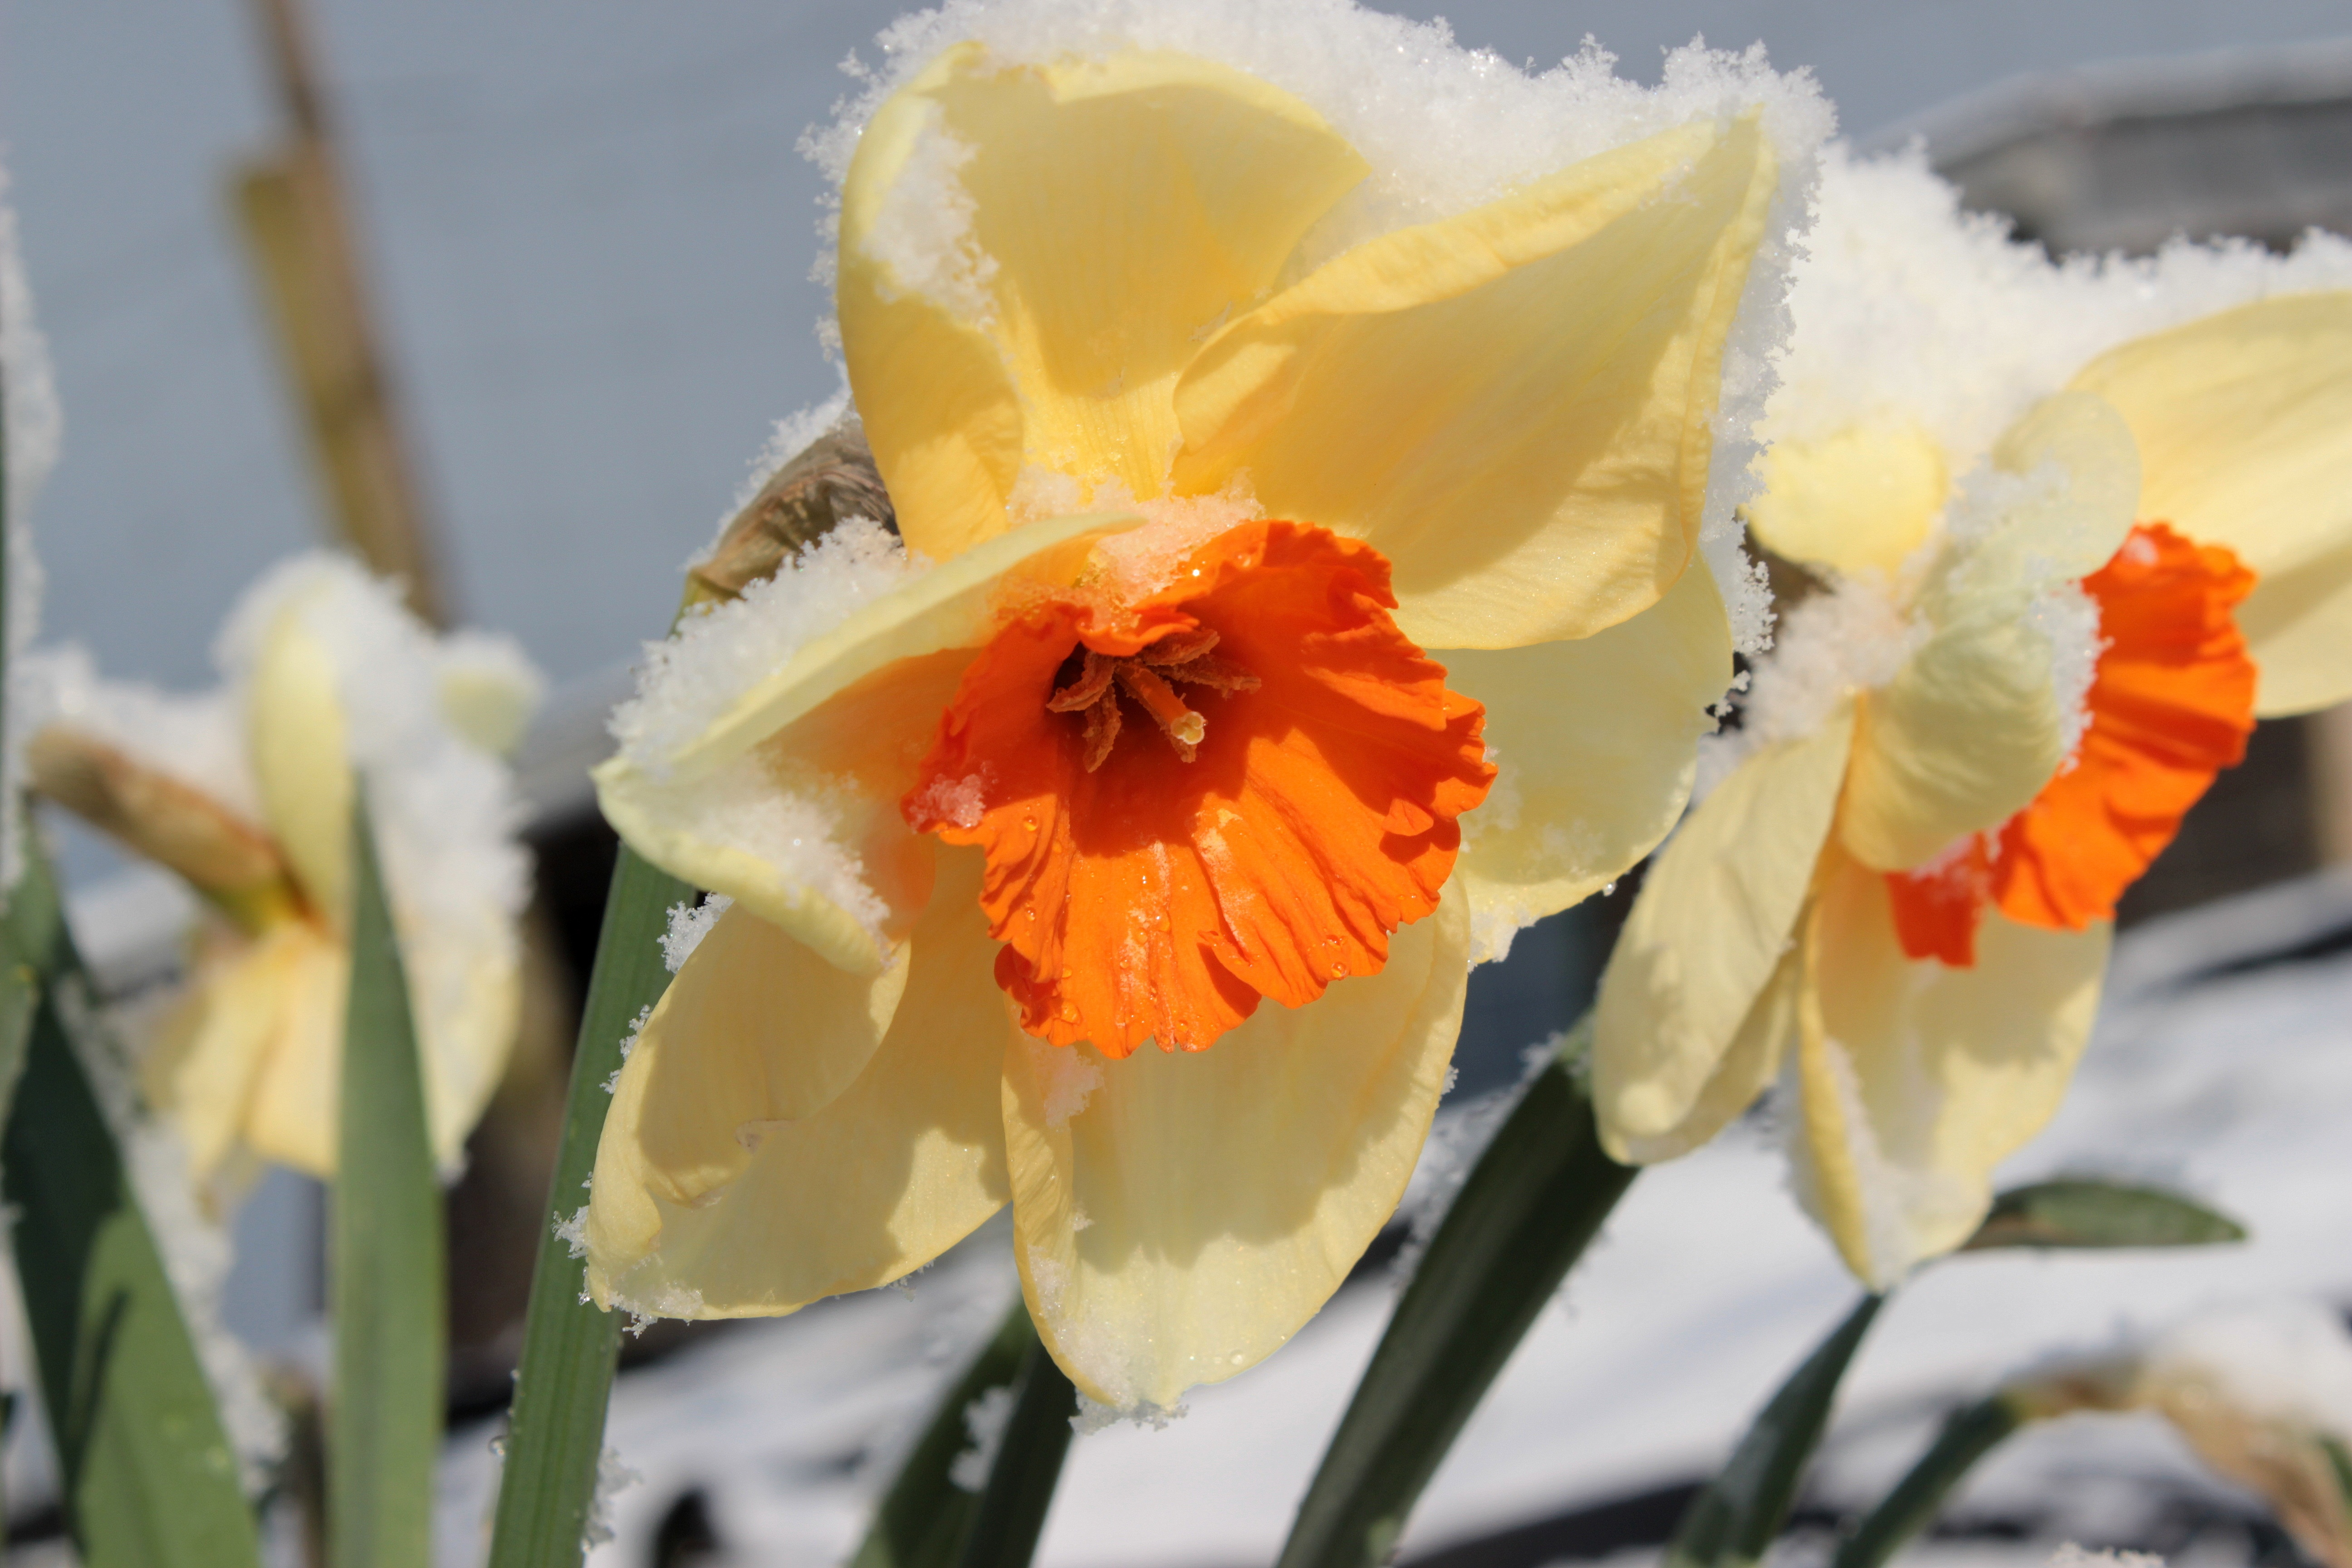 Daffodil spring yellow orange